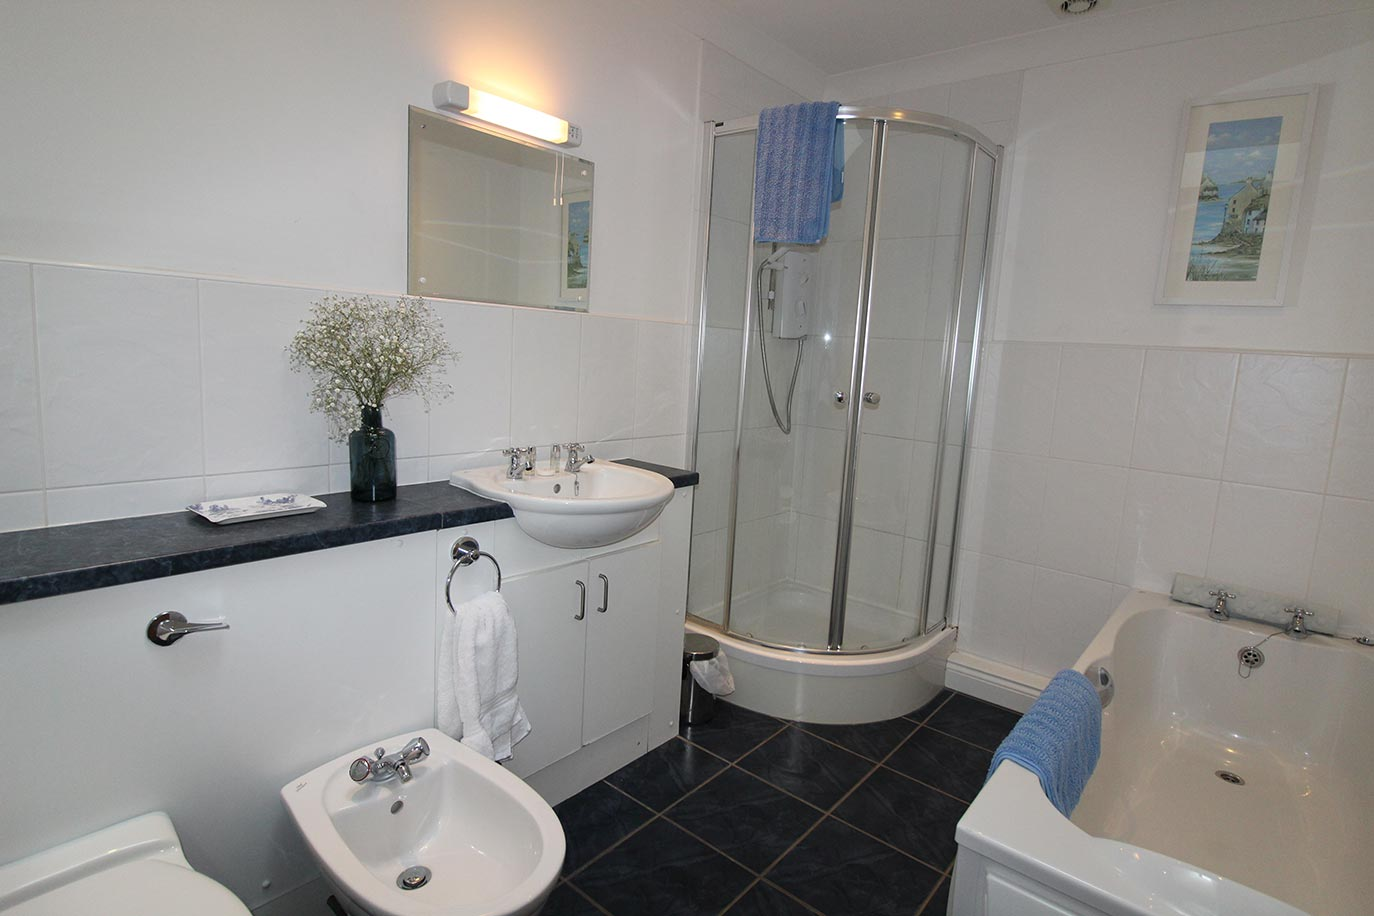 Jacobswell House family bathroom | Burradon Farm Houses & Cottages